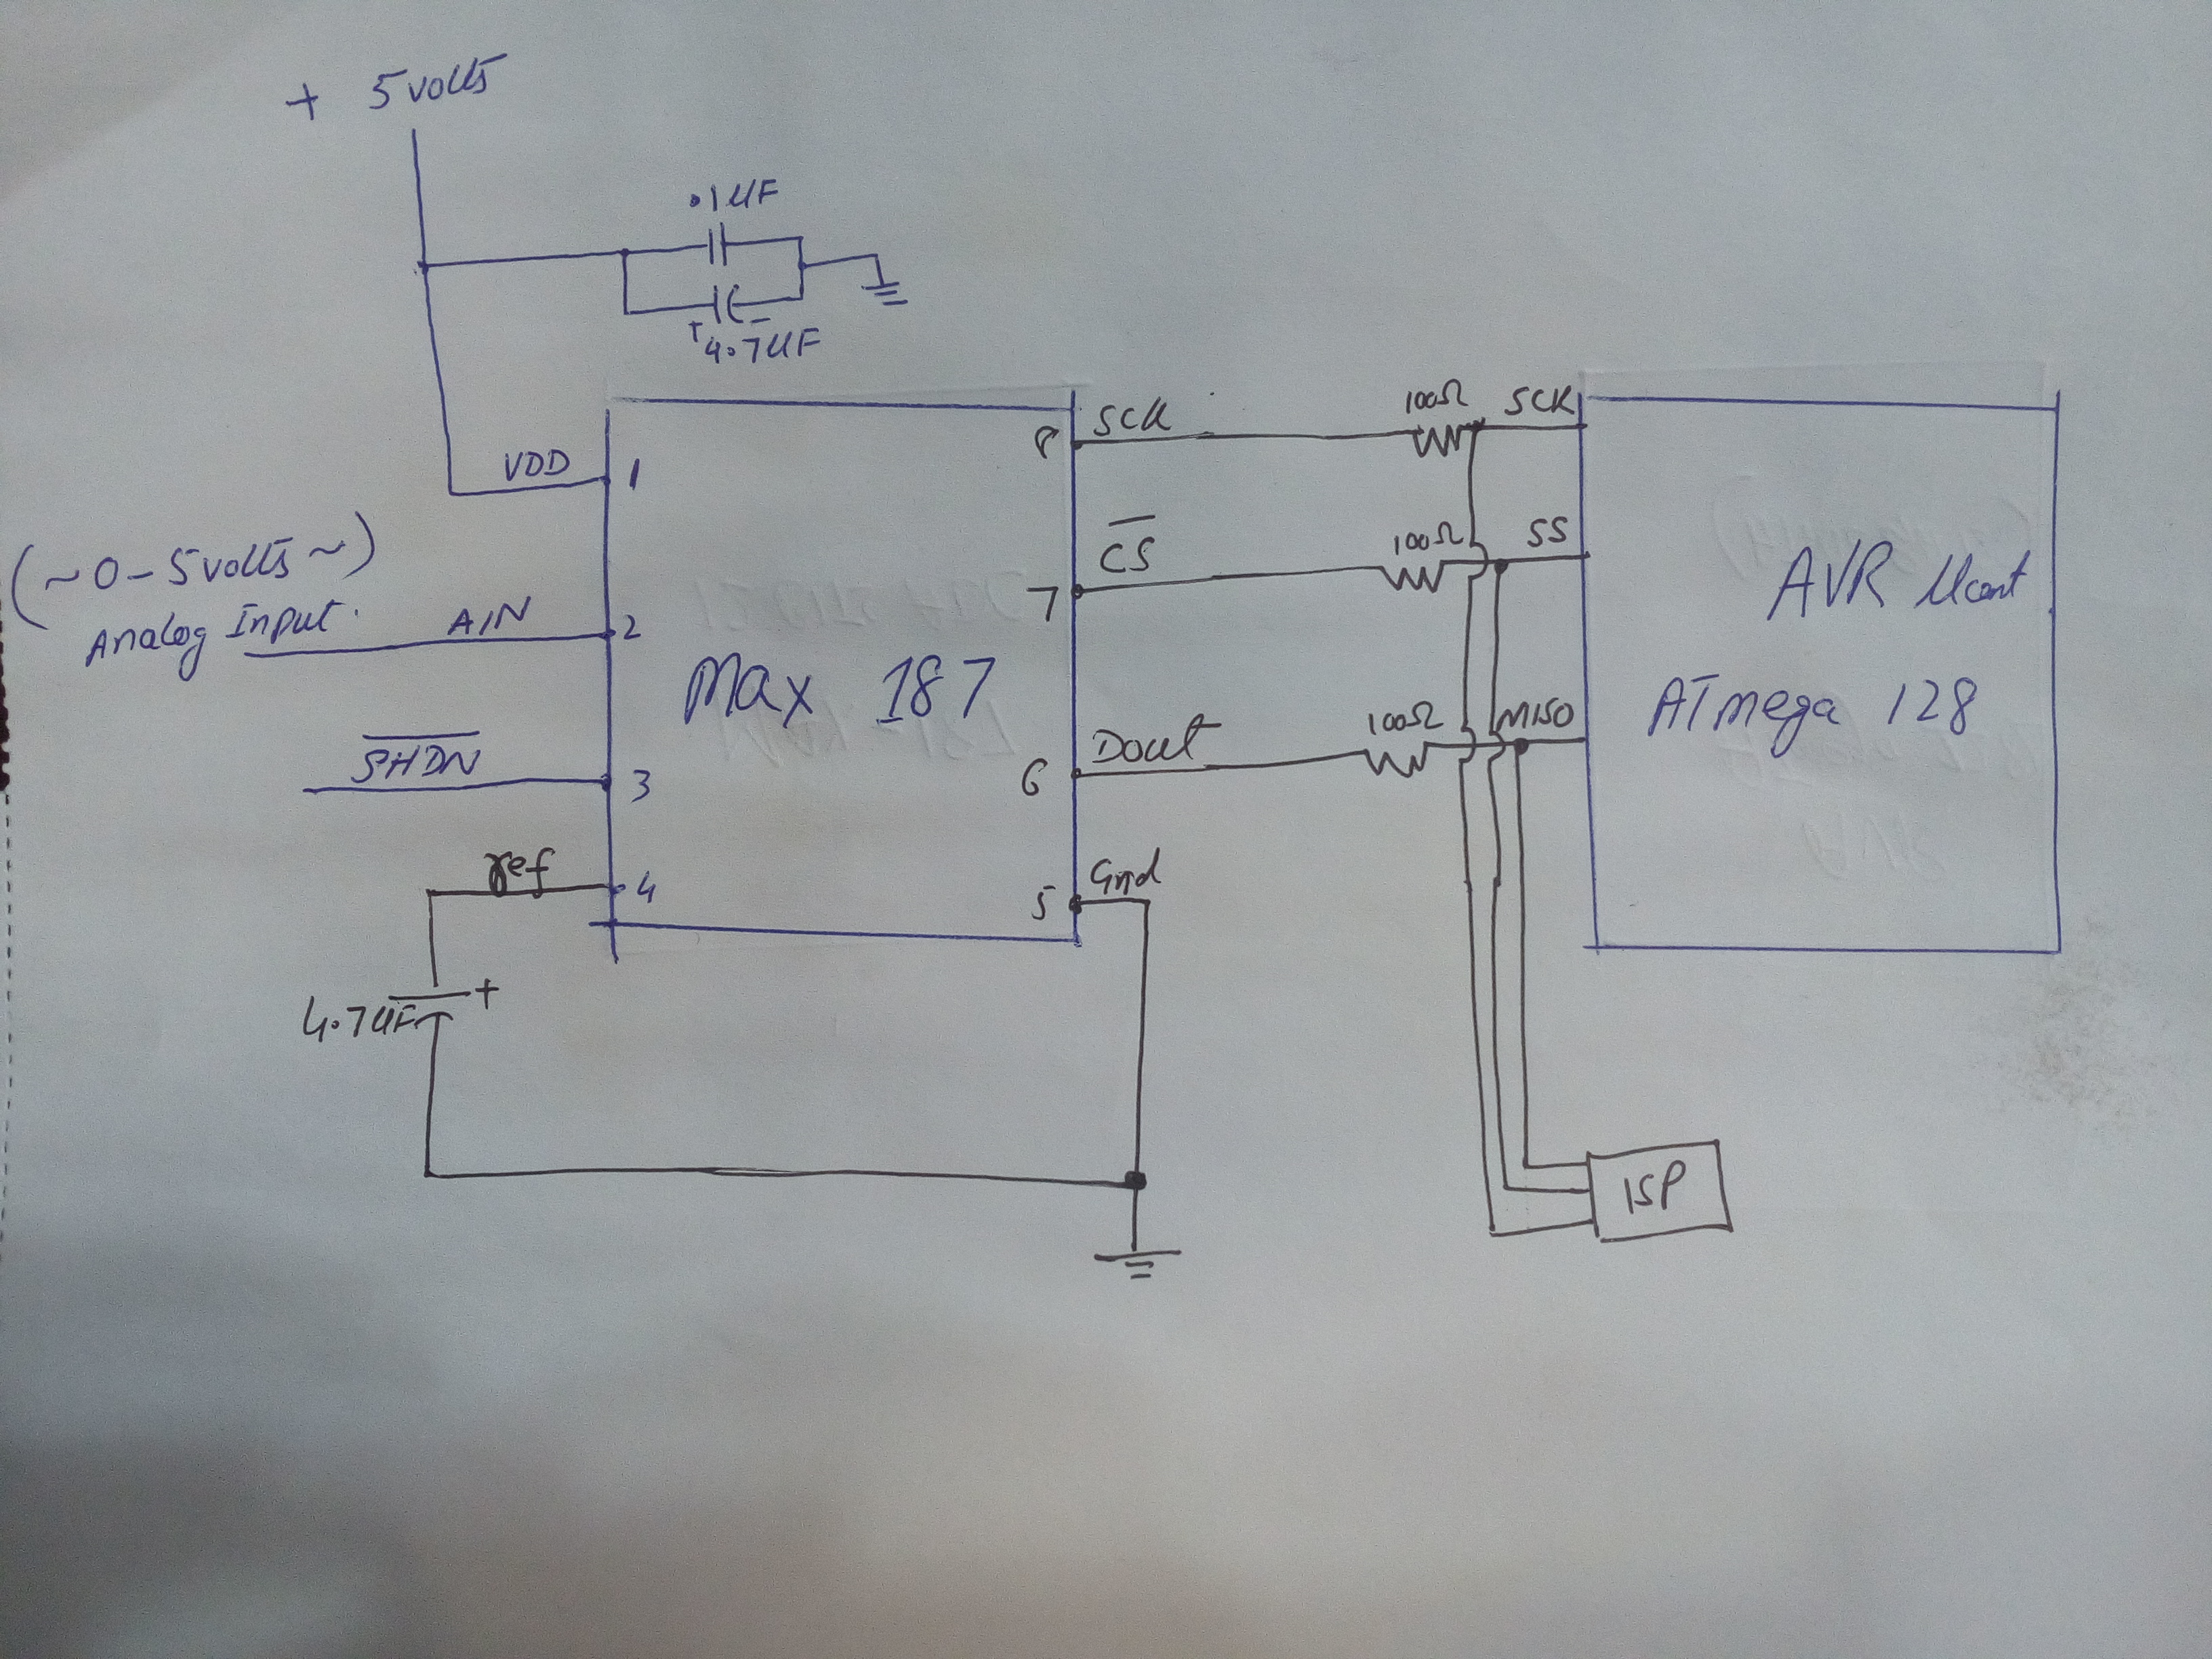 Atmega 128 Interfacing With Max187 12 Bits Adc On Spi Interface Spidataclocktimingdiagram Img 20170211 174531